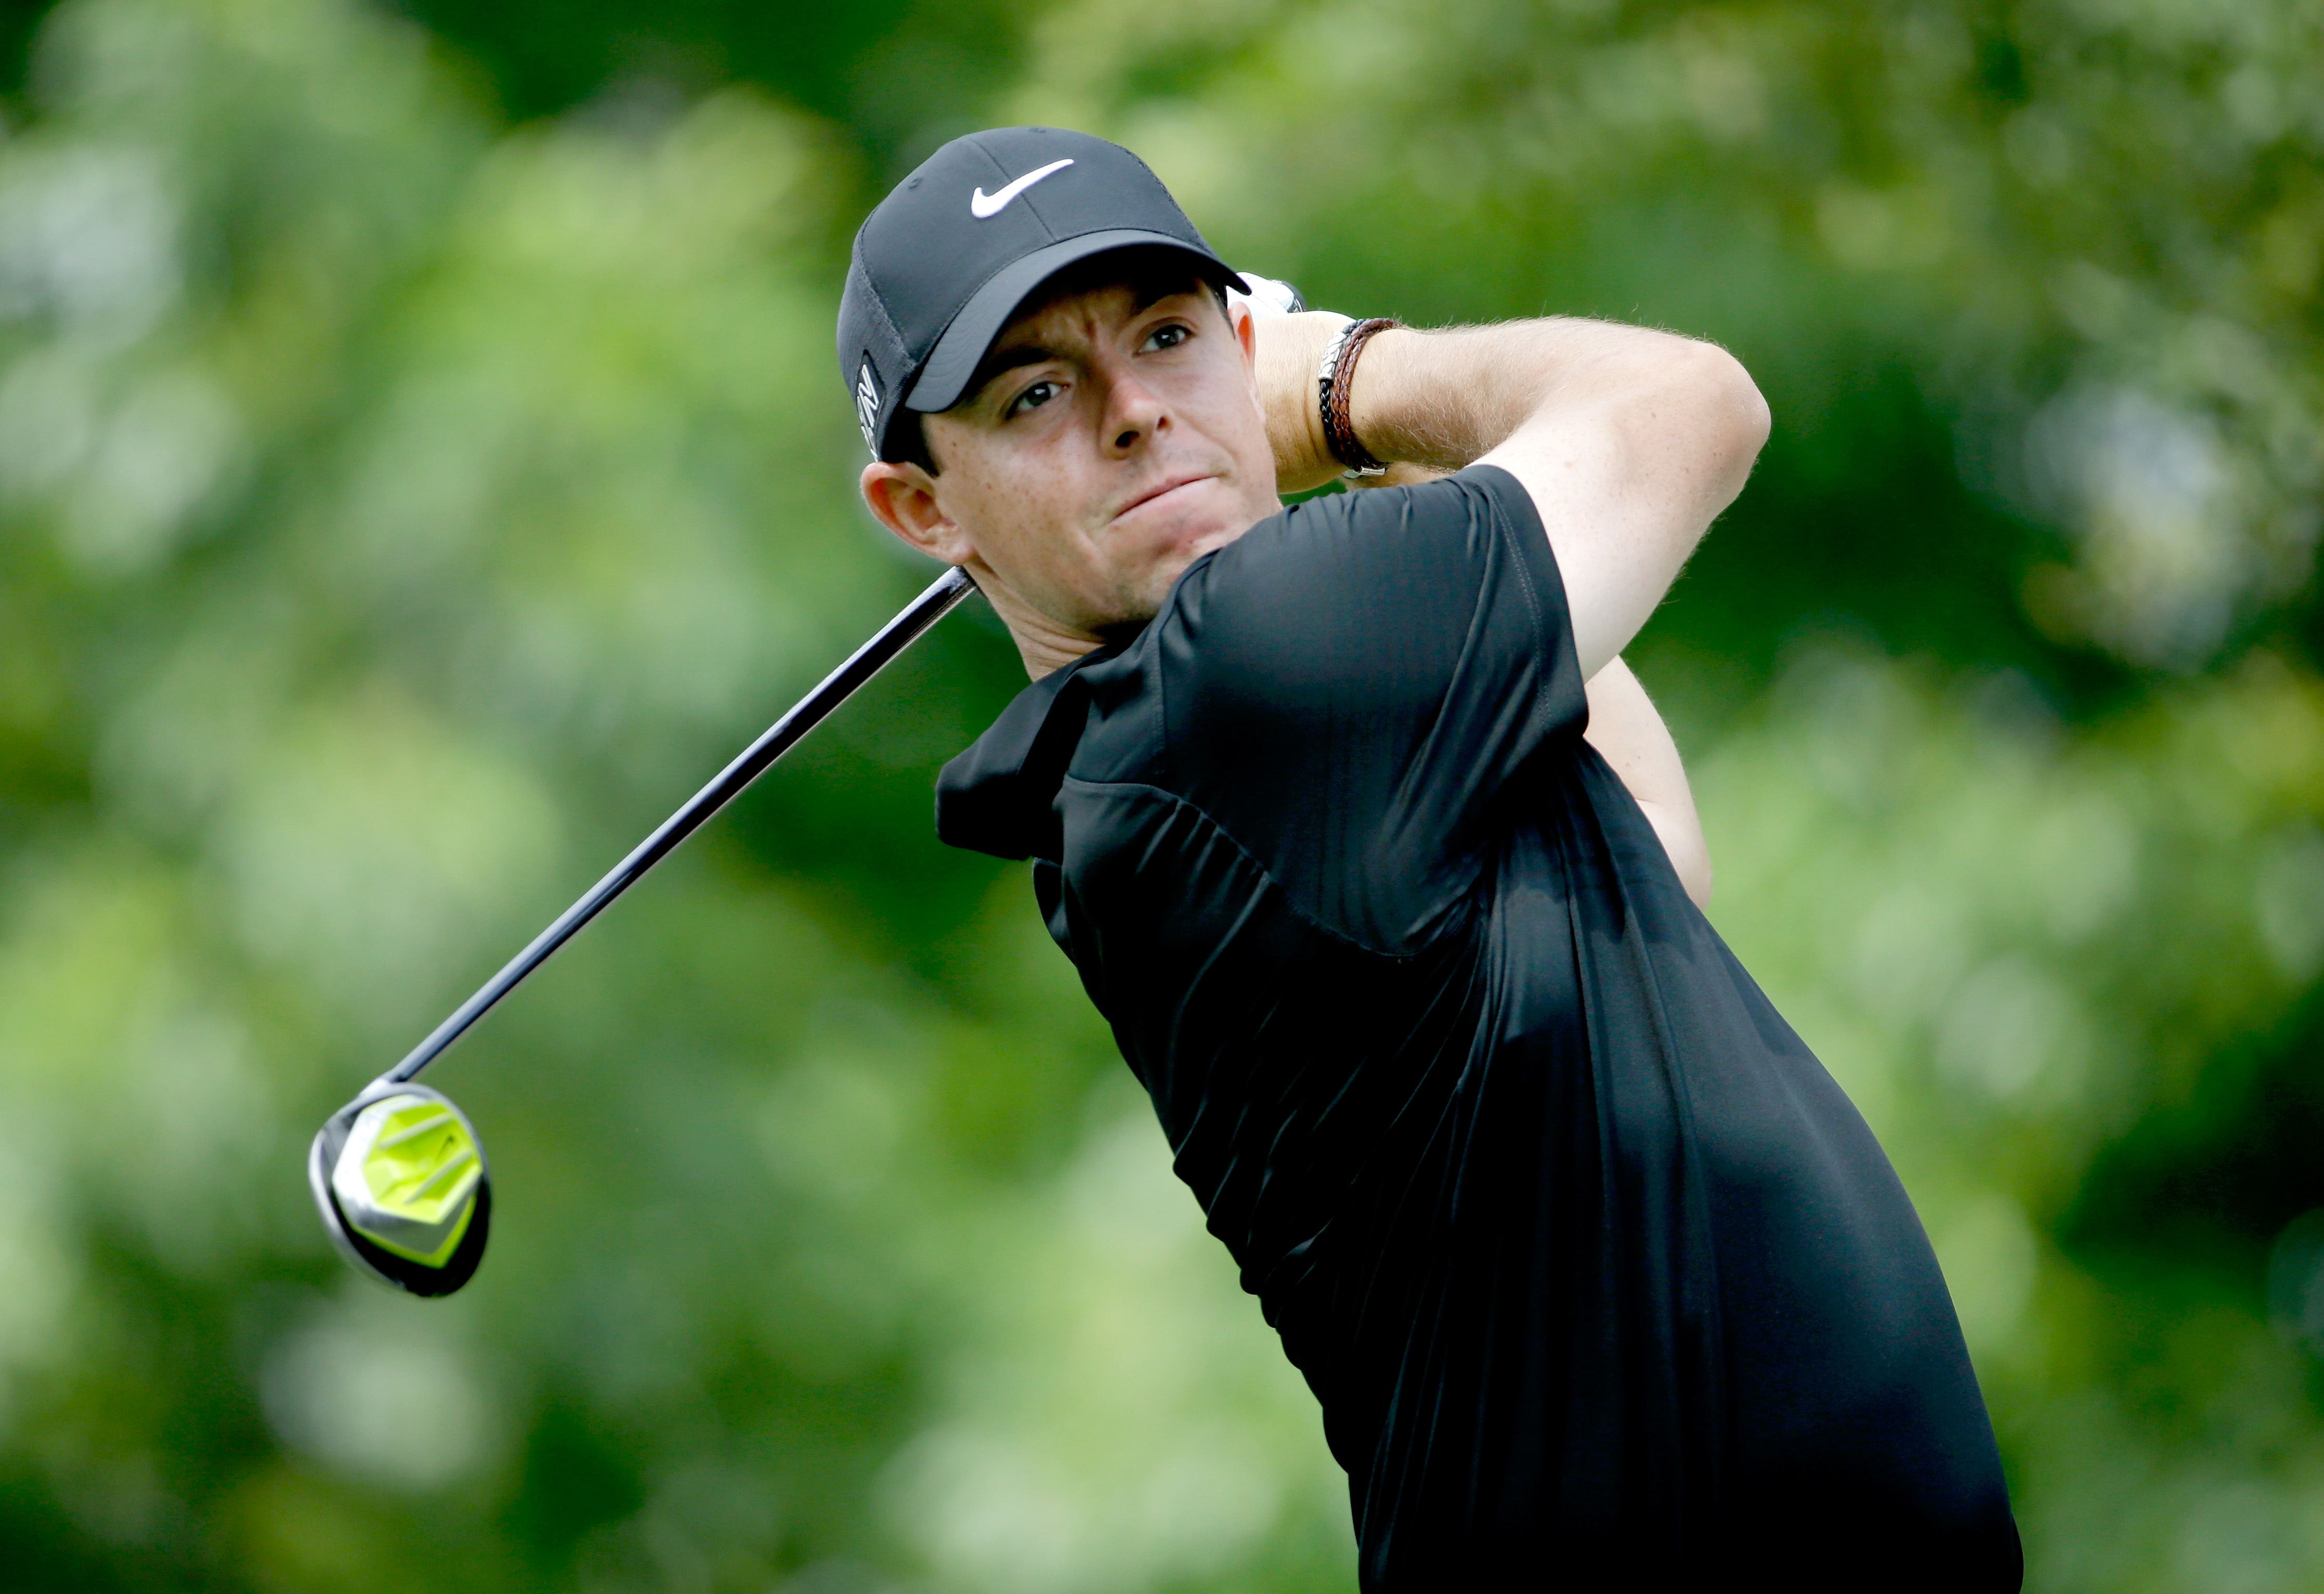 Rory McIlroy tees off on the third hole during the second round of the 2015 Wells Fargo Championship.